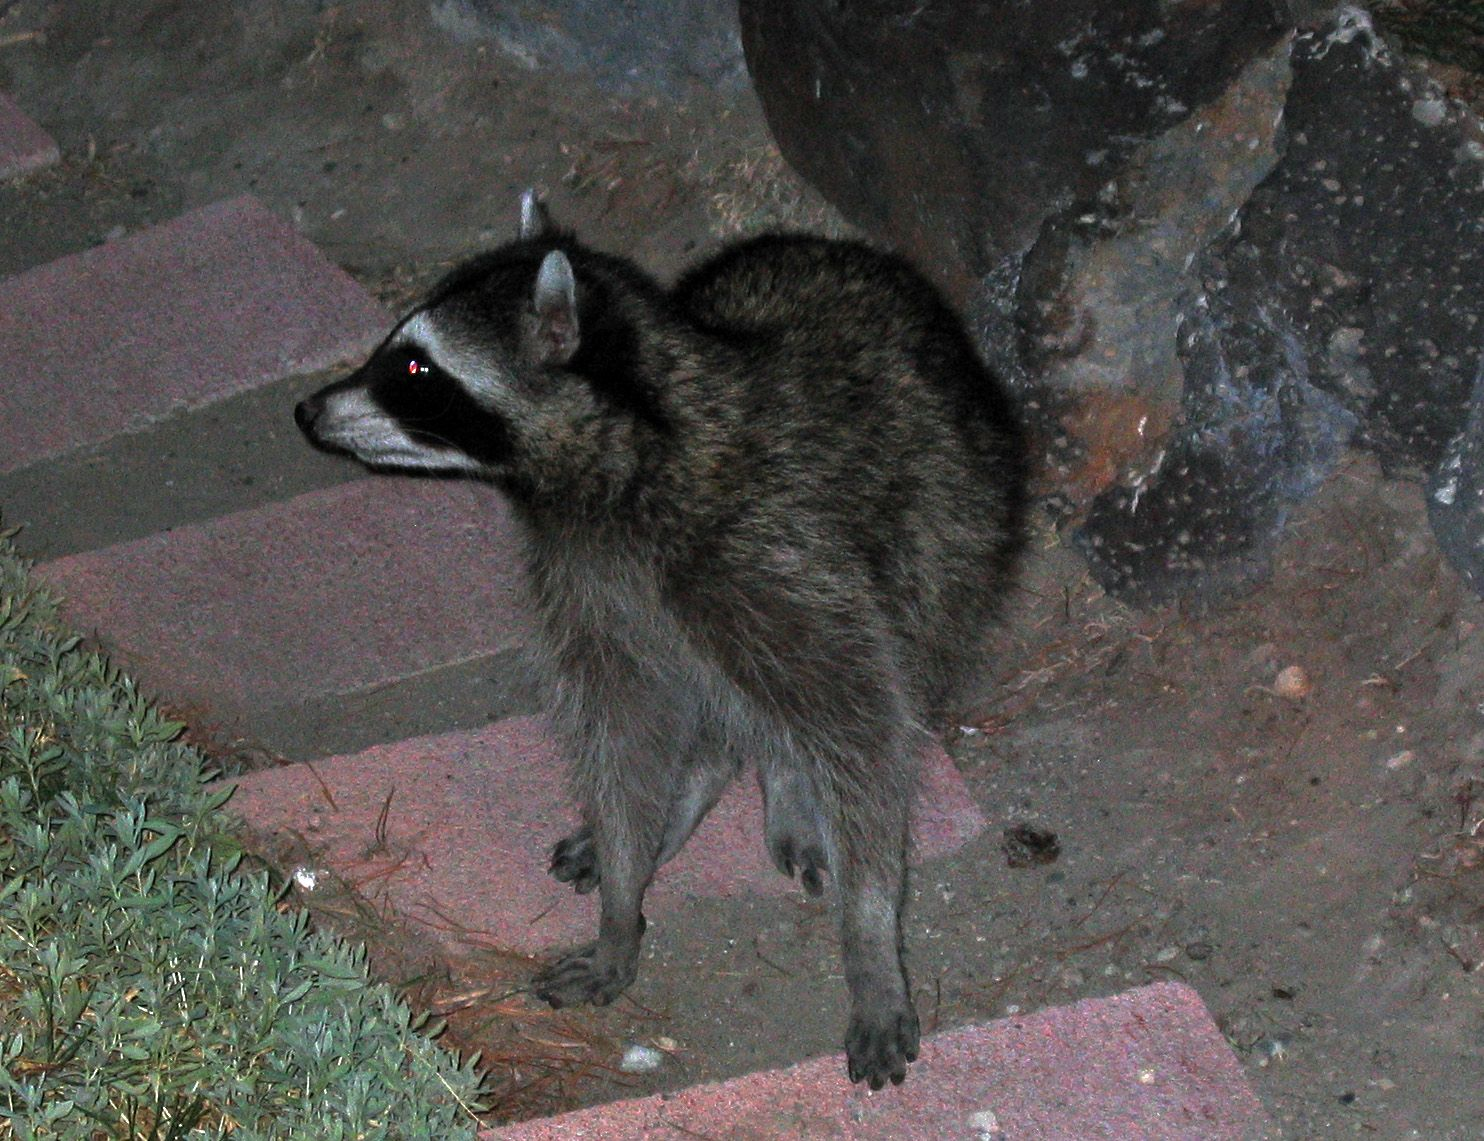 Cat and Racoon 021.jpg